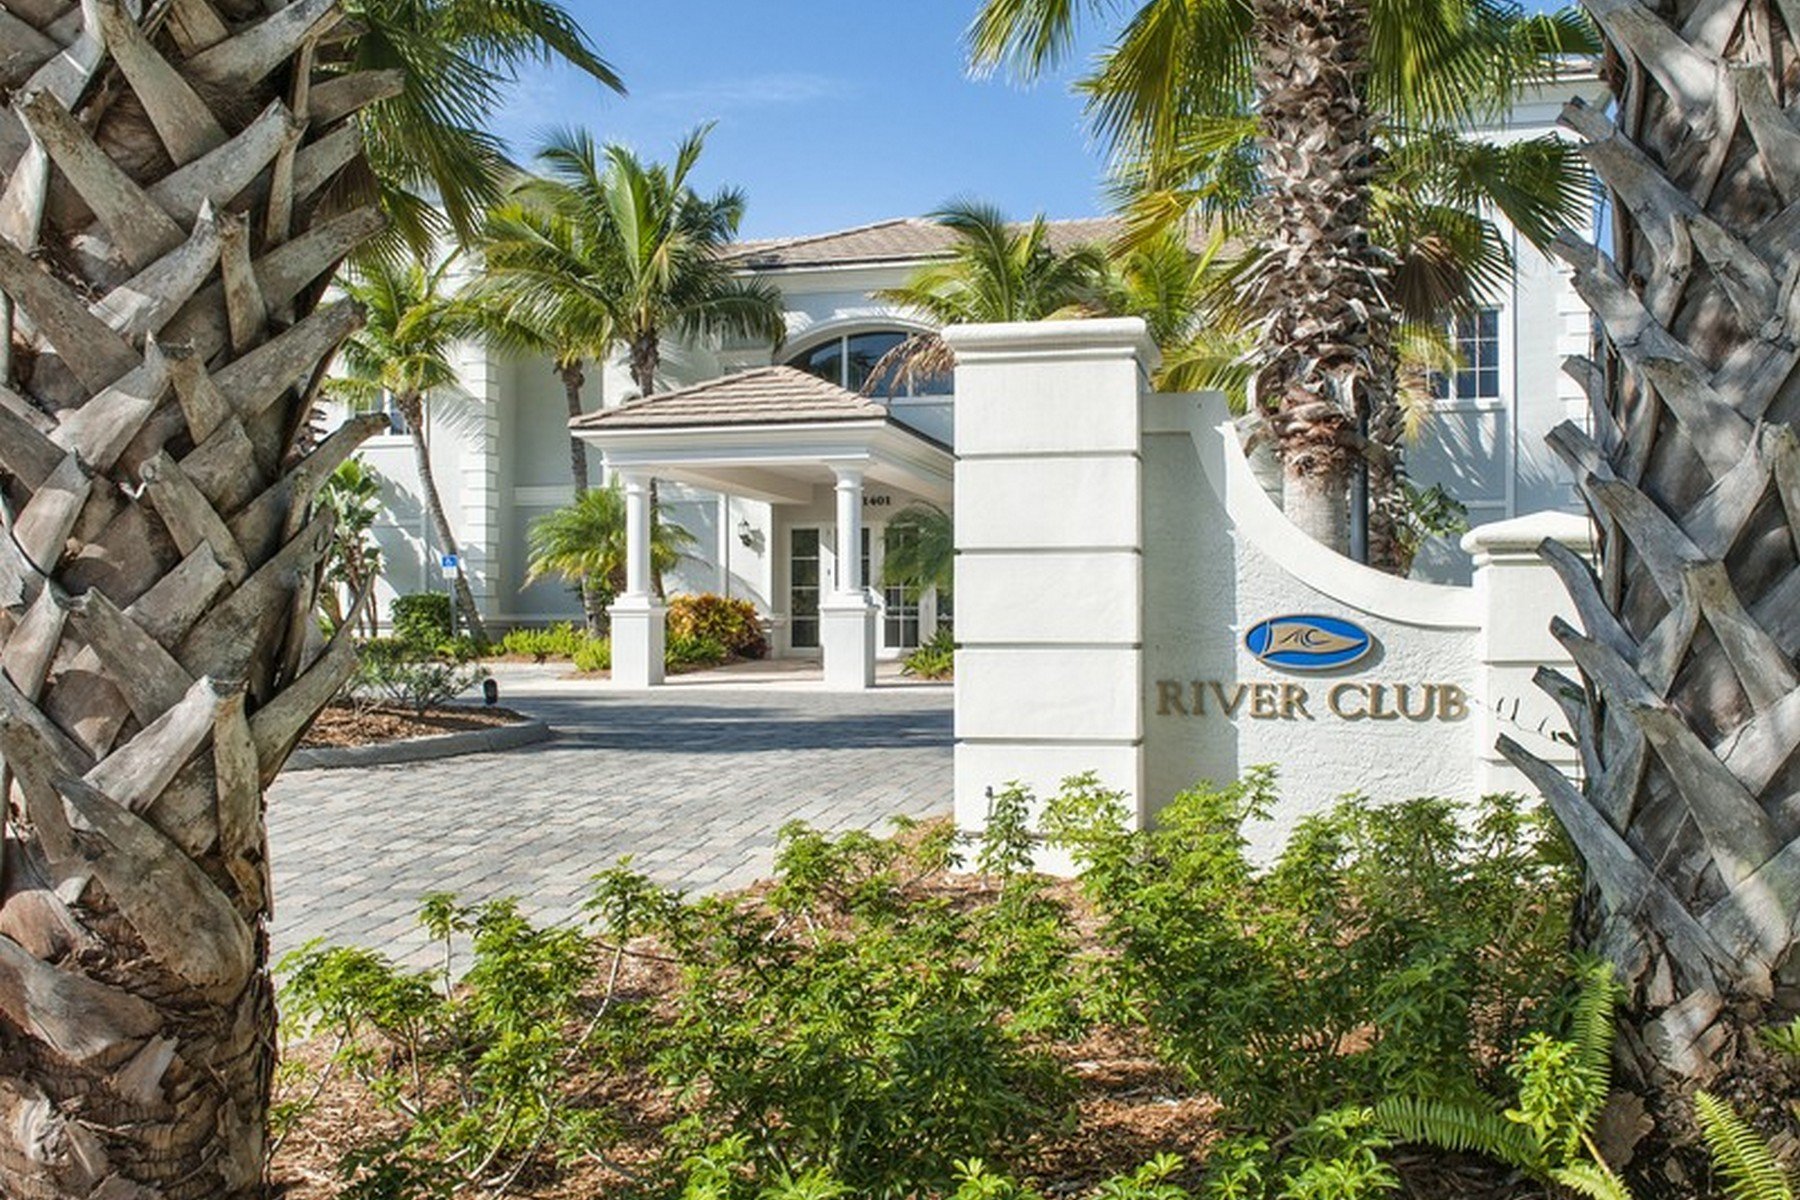 Vivienda unifamiliar por un Venta en Sophisticated To Be Built Home in River Club 1413 Old Winter Beach Rd Vero Beach, Florida, 32963 Estados Unidos